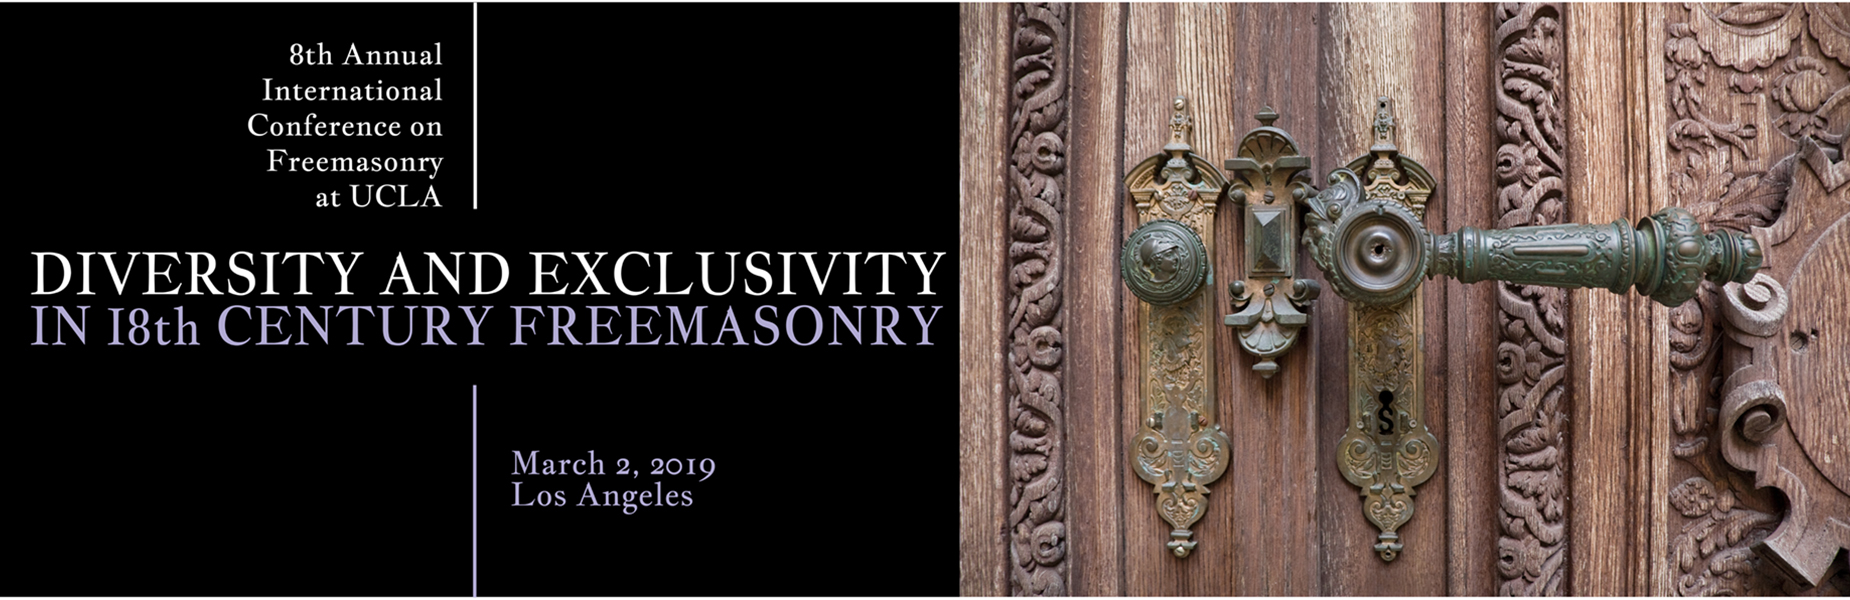 8th International Conference on Freemasonry